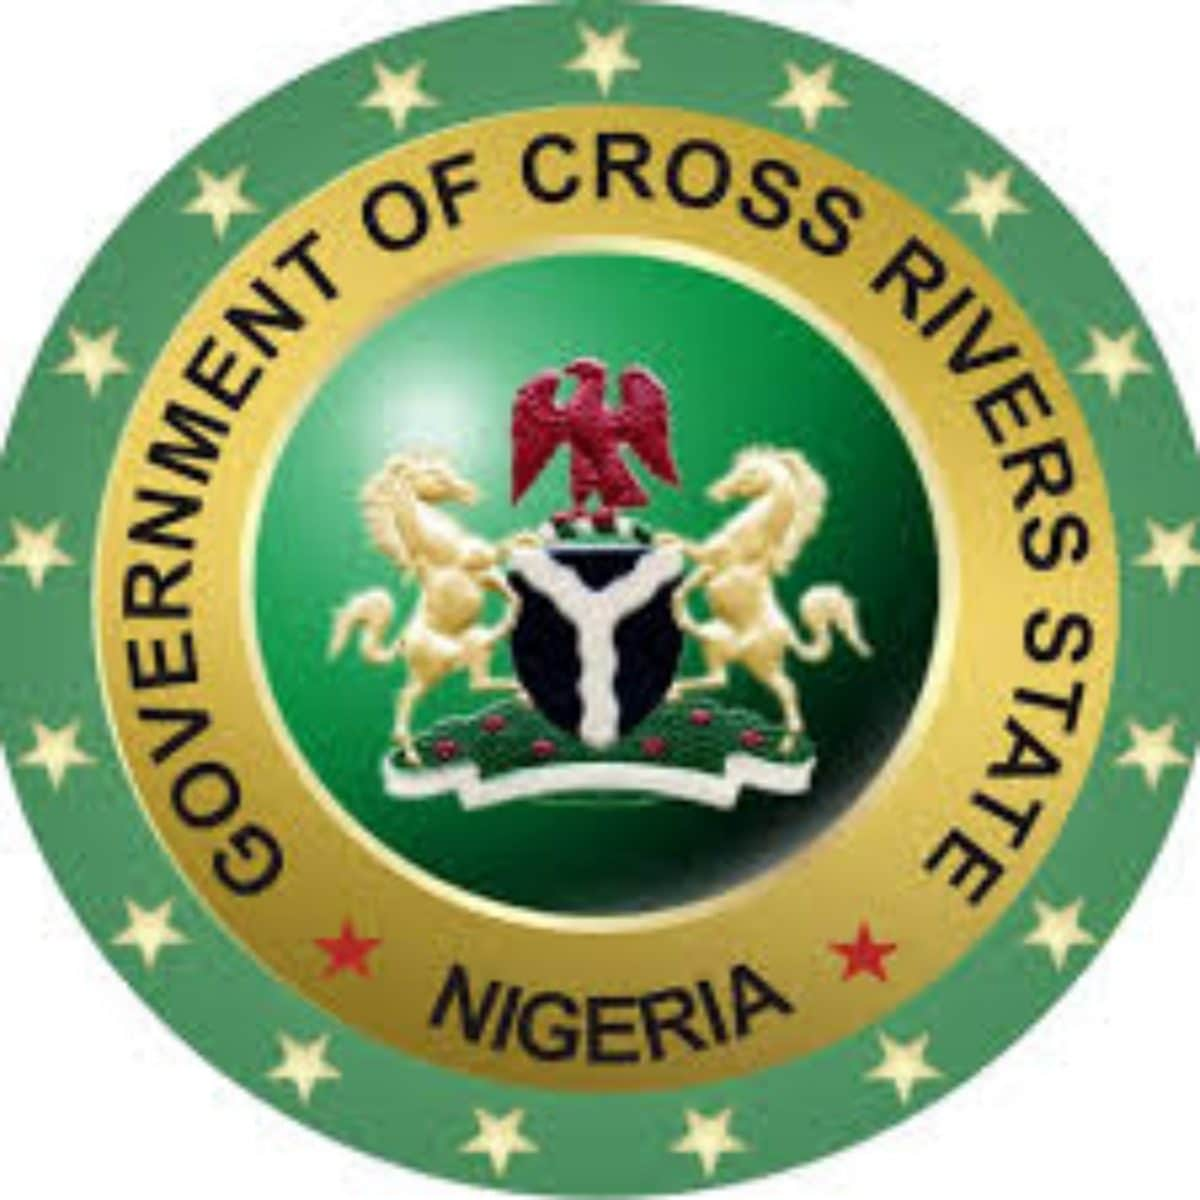 Taxi Drivers In Calabar Have Defied The Order By The Cross River Government To Carry Only Two Passengers At A Time To Stop The Spread Of Coronavirus (covid 19) Pandemic In The State. A Nigeria News